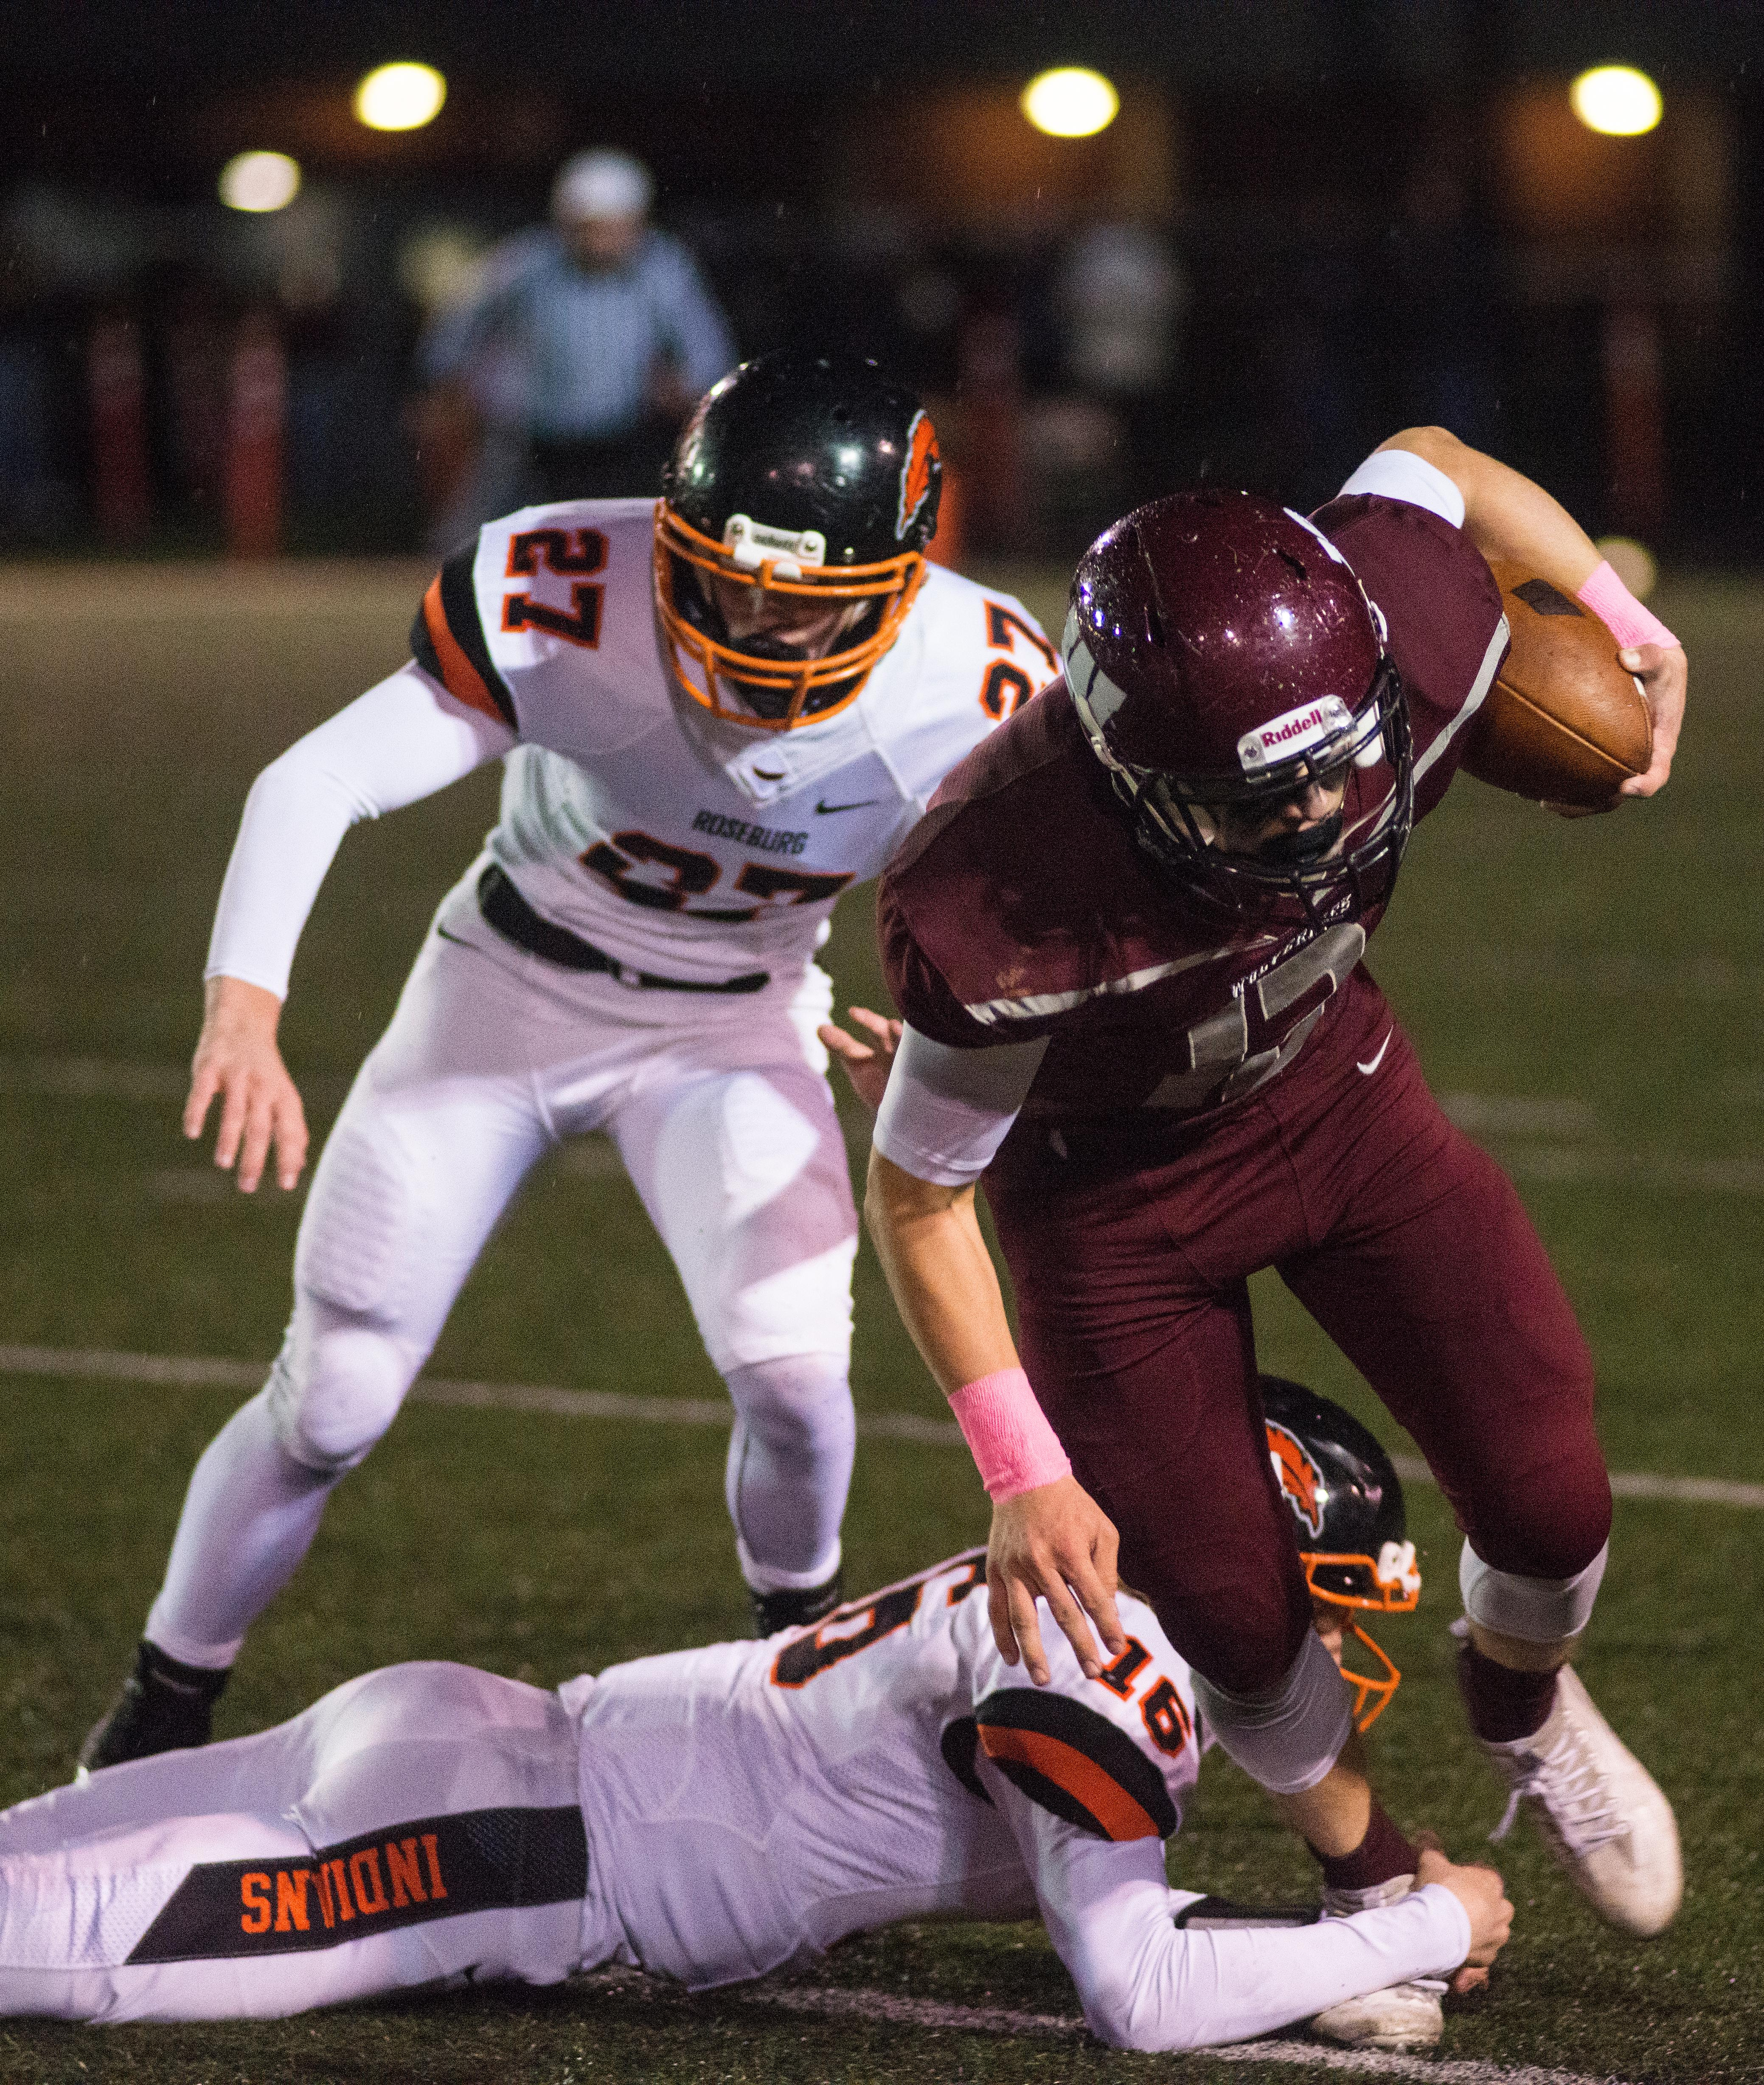 Willamette Wolverines Griffin LaVassaur (#12) attempts to carry the ball past Roseburg's defense. Roseburg Indians defeated Willamette Wolverines 21-20 at Wolverine Stadium on Friday night in Eugene. Photo by Rhianna Gelhart, Oregon News Lab